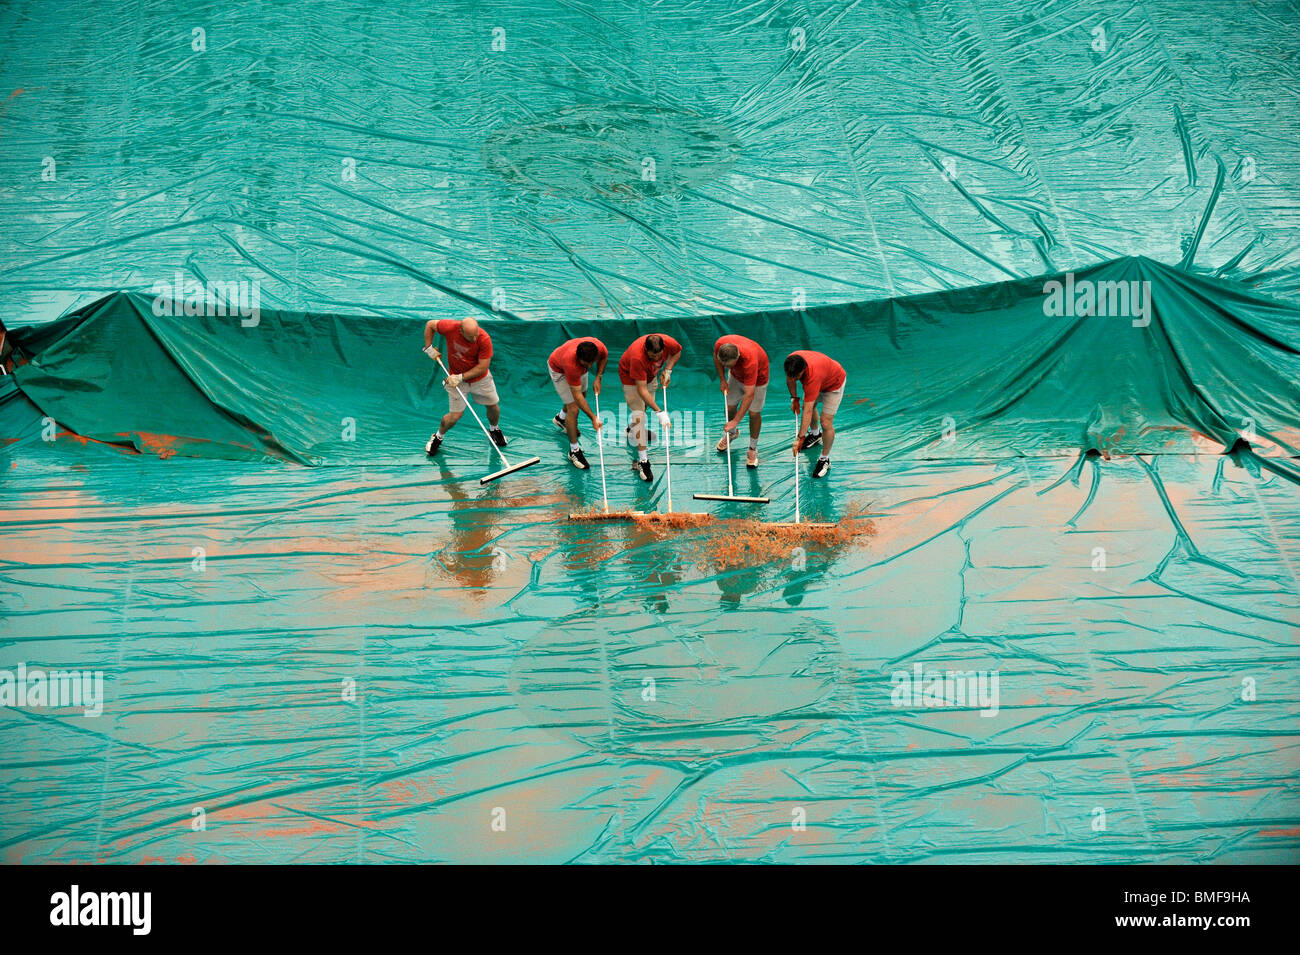 Rain delay at the 2010 French Open - Stock Image